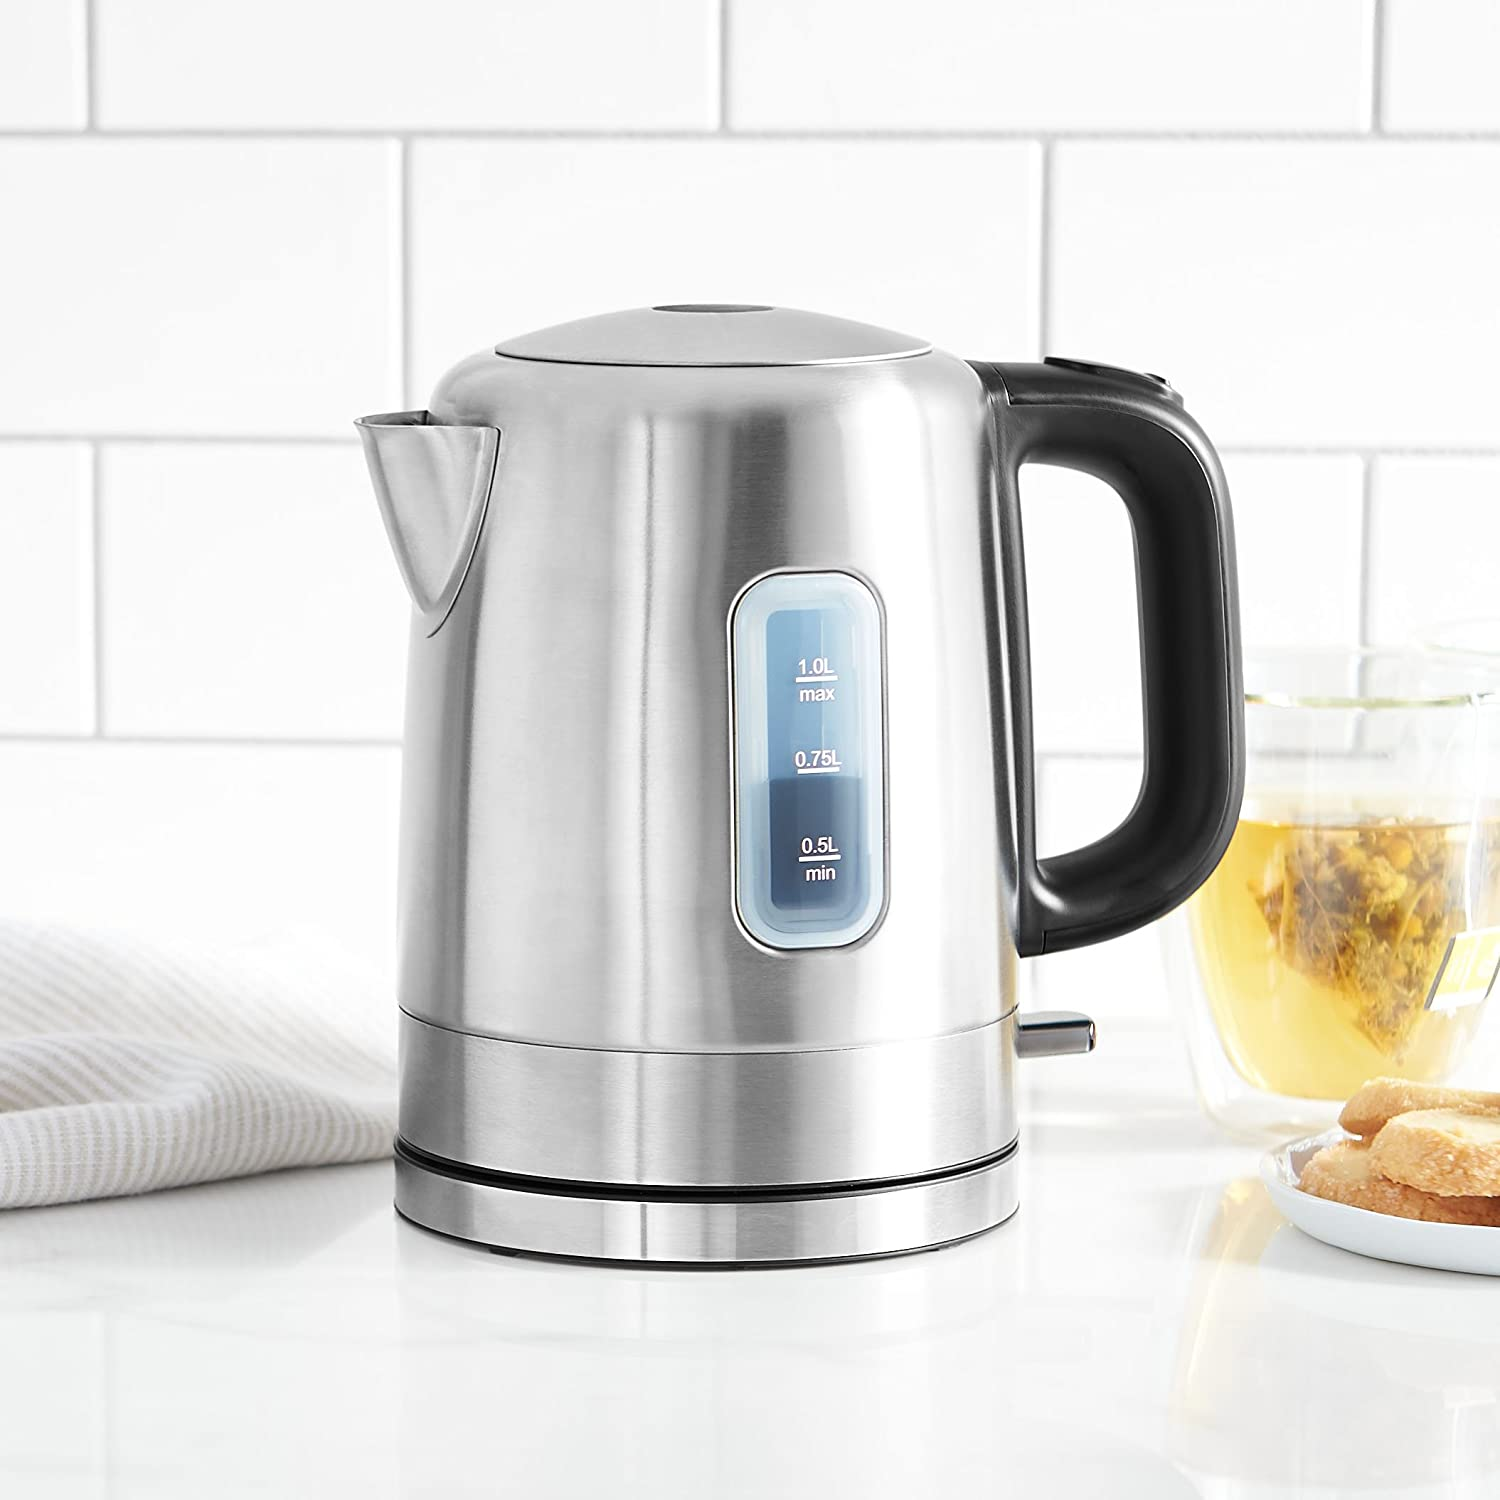 Amazonbasics Stainless Steel Electric Kettle Review